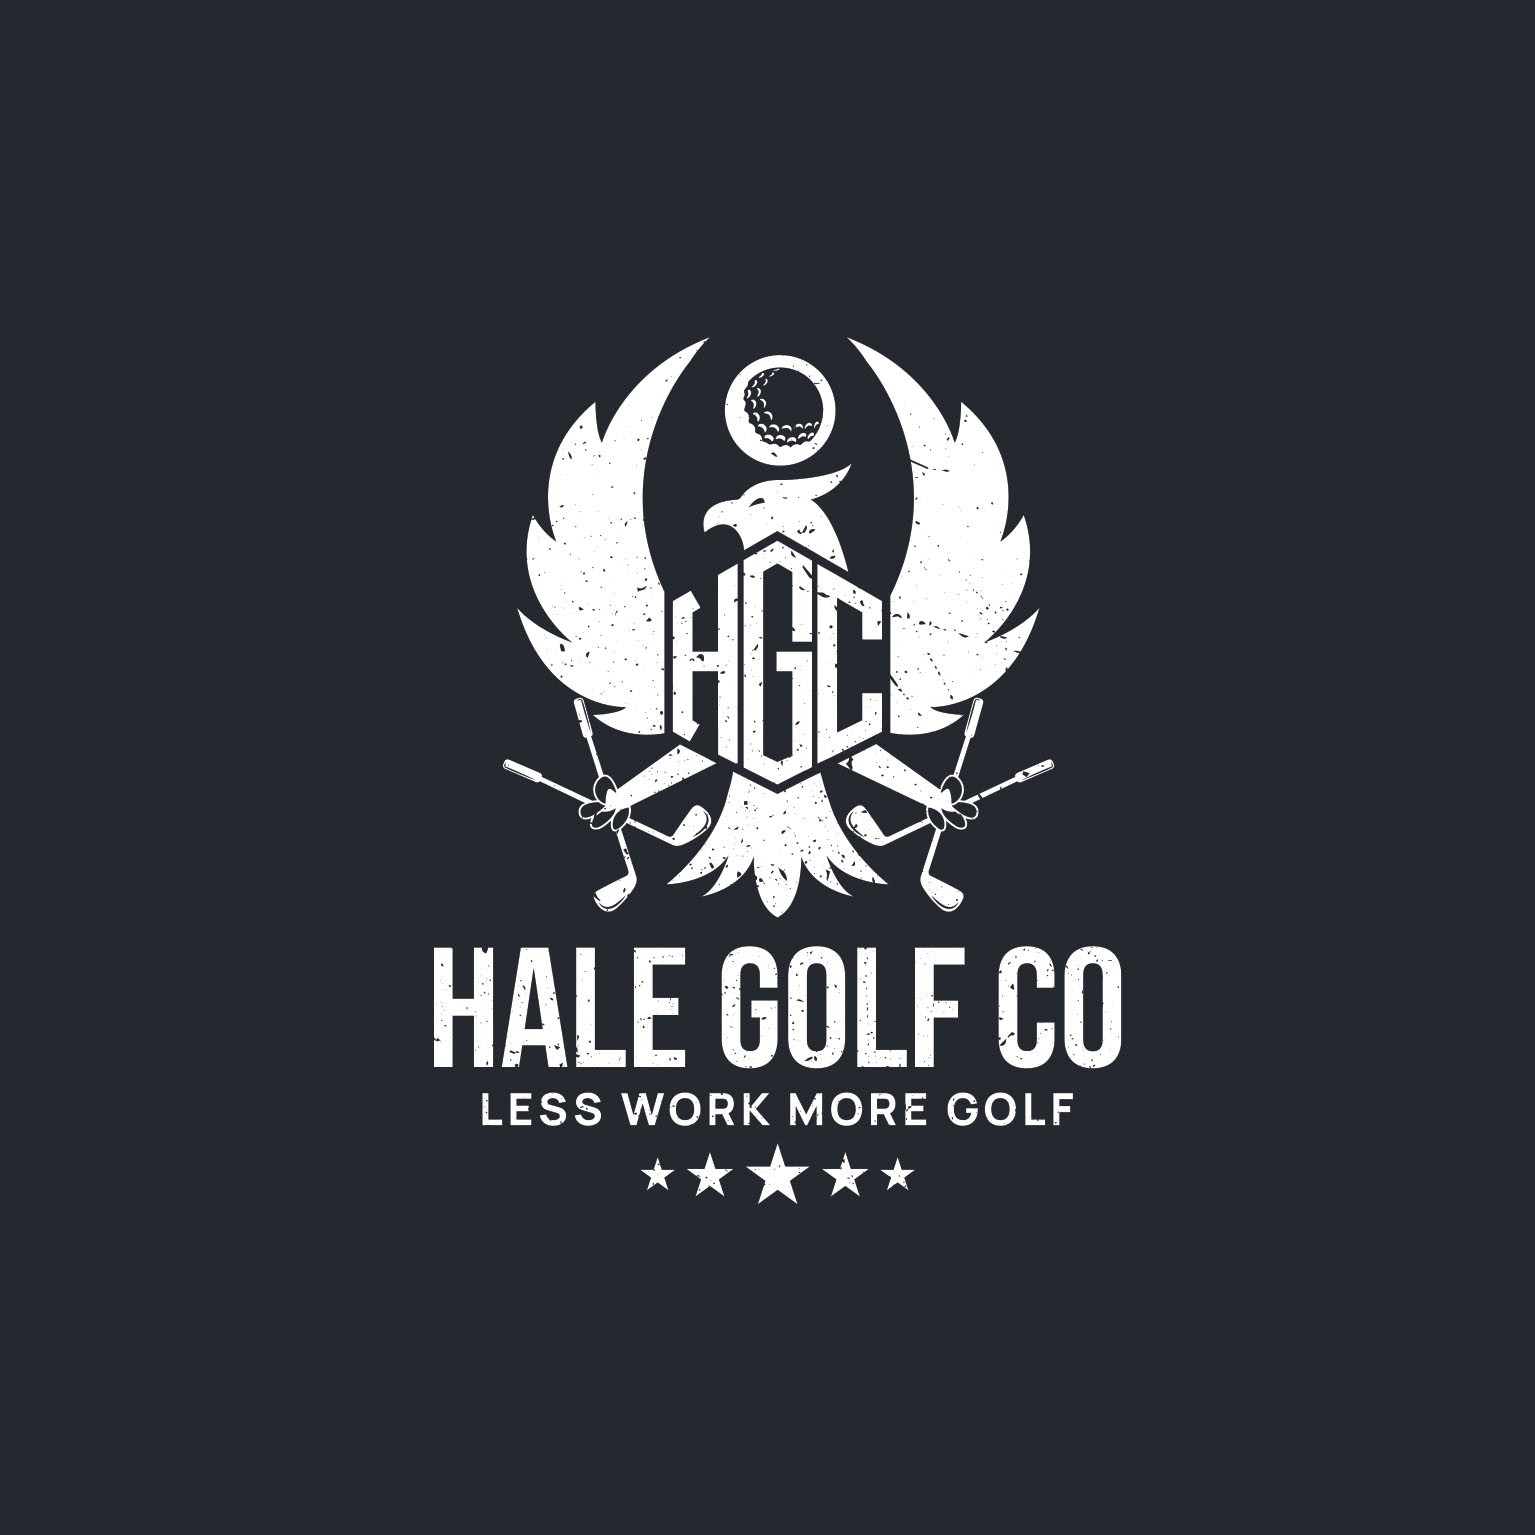 Need a Patriotic/ Blue Collar Type  Logo for a Golf Apparel Company